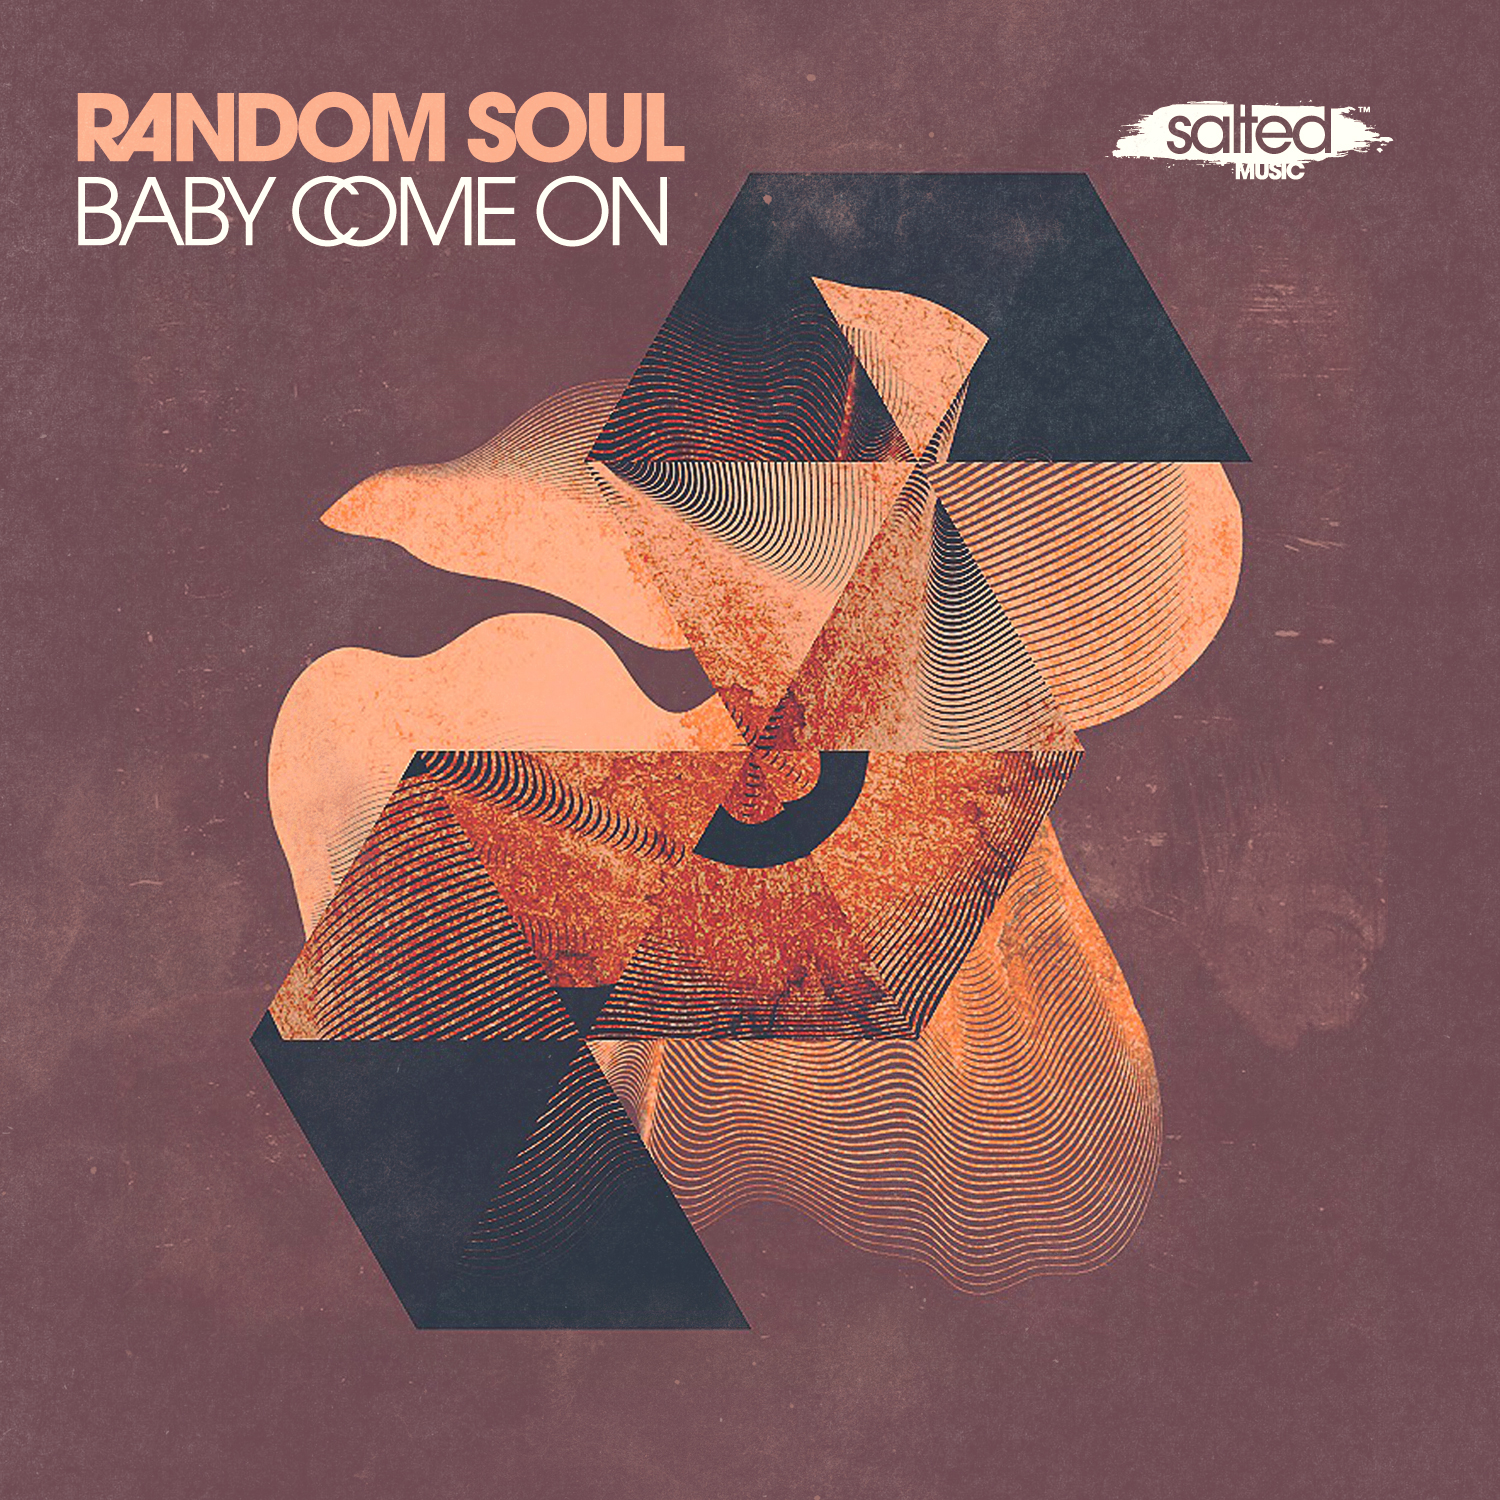 SLT168: Baby Come On – Random Soul (Salted Music)